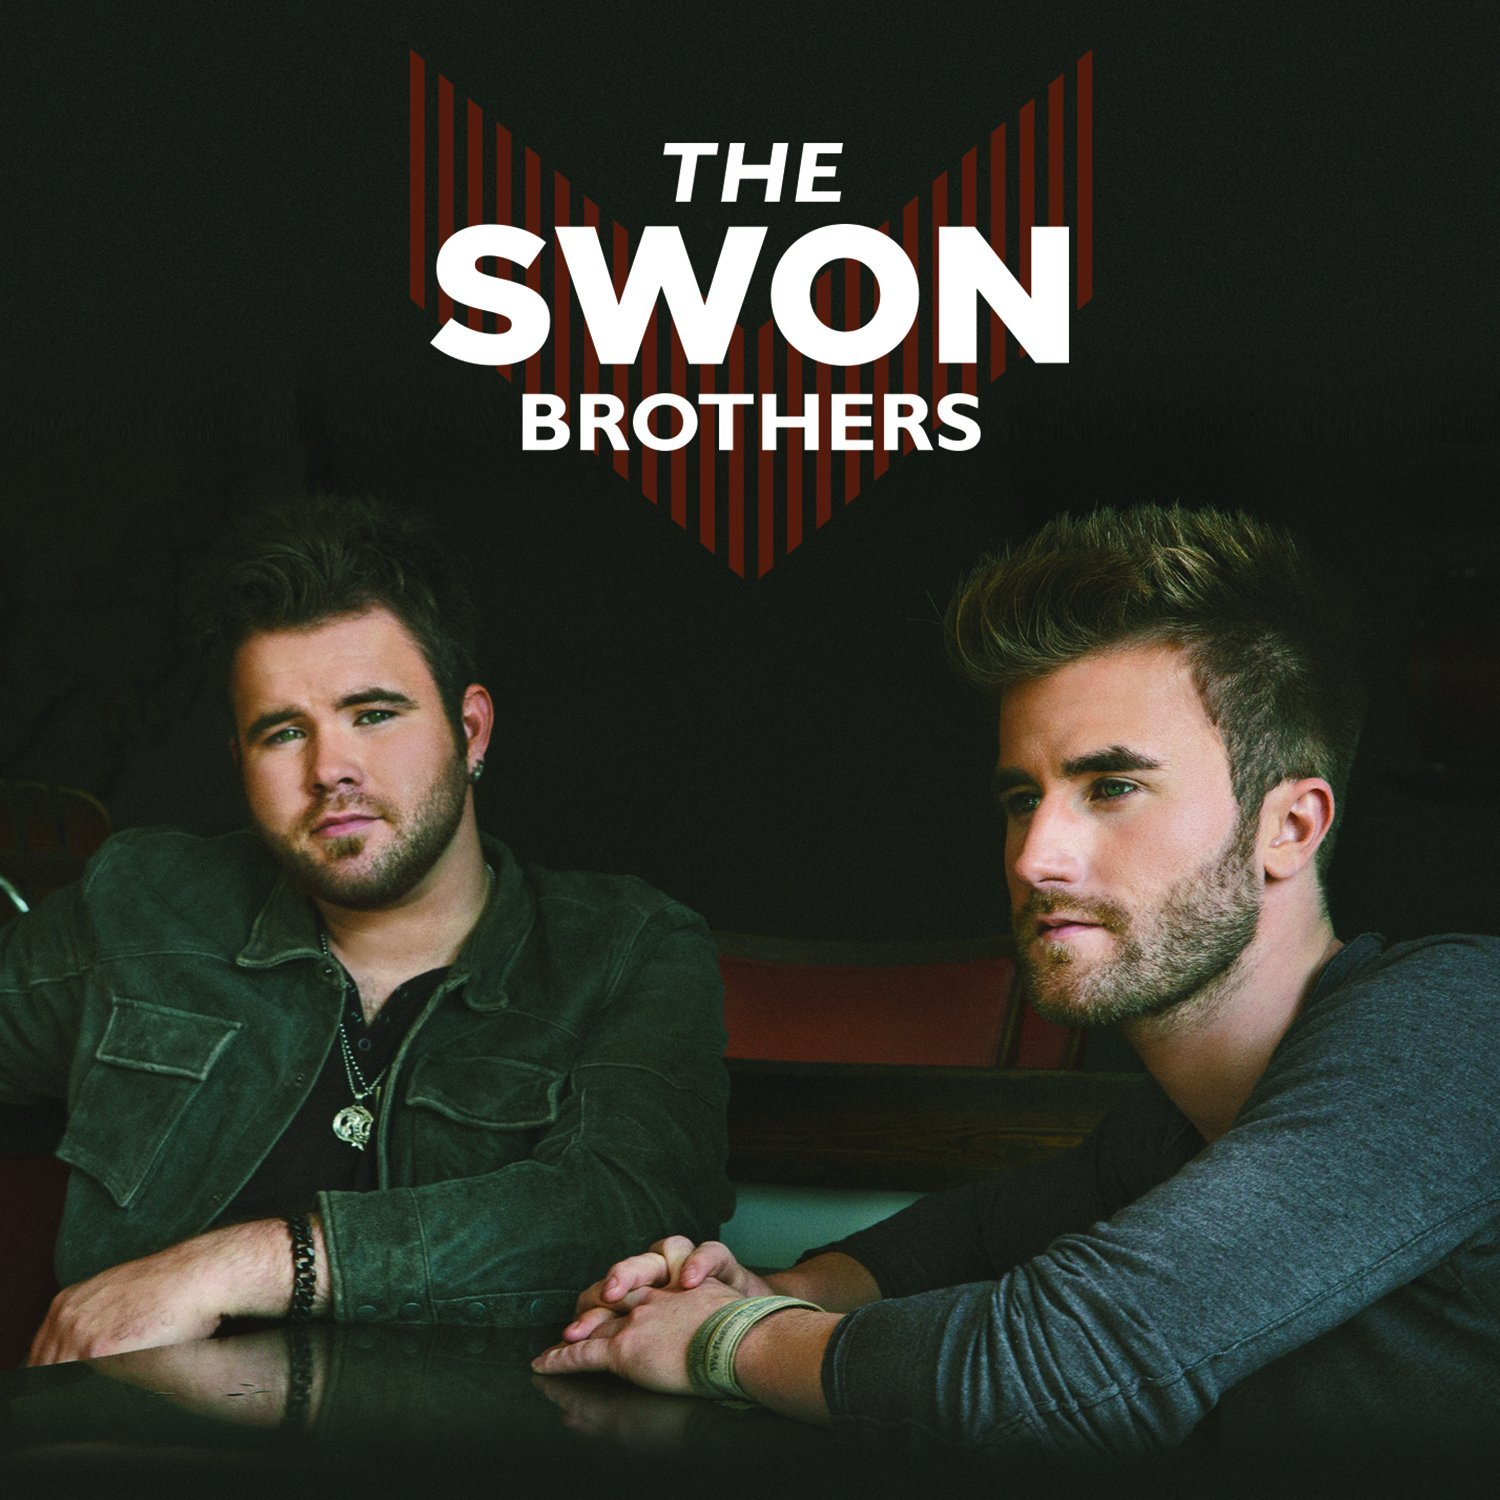 The Swon Brothers, The Swon Brothers